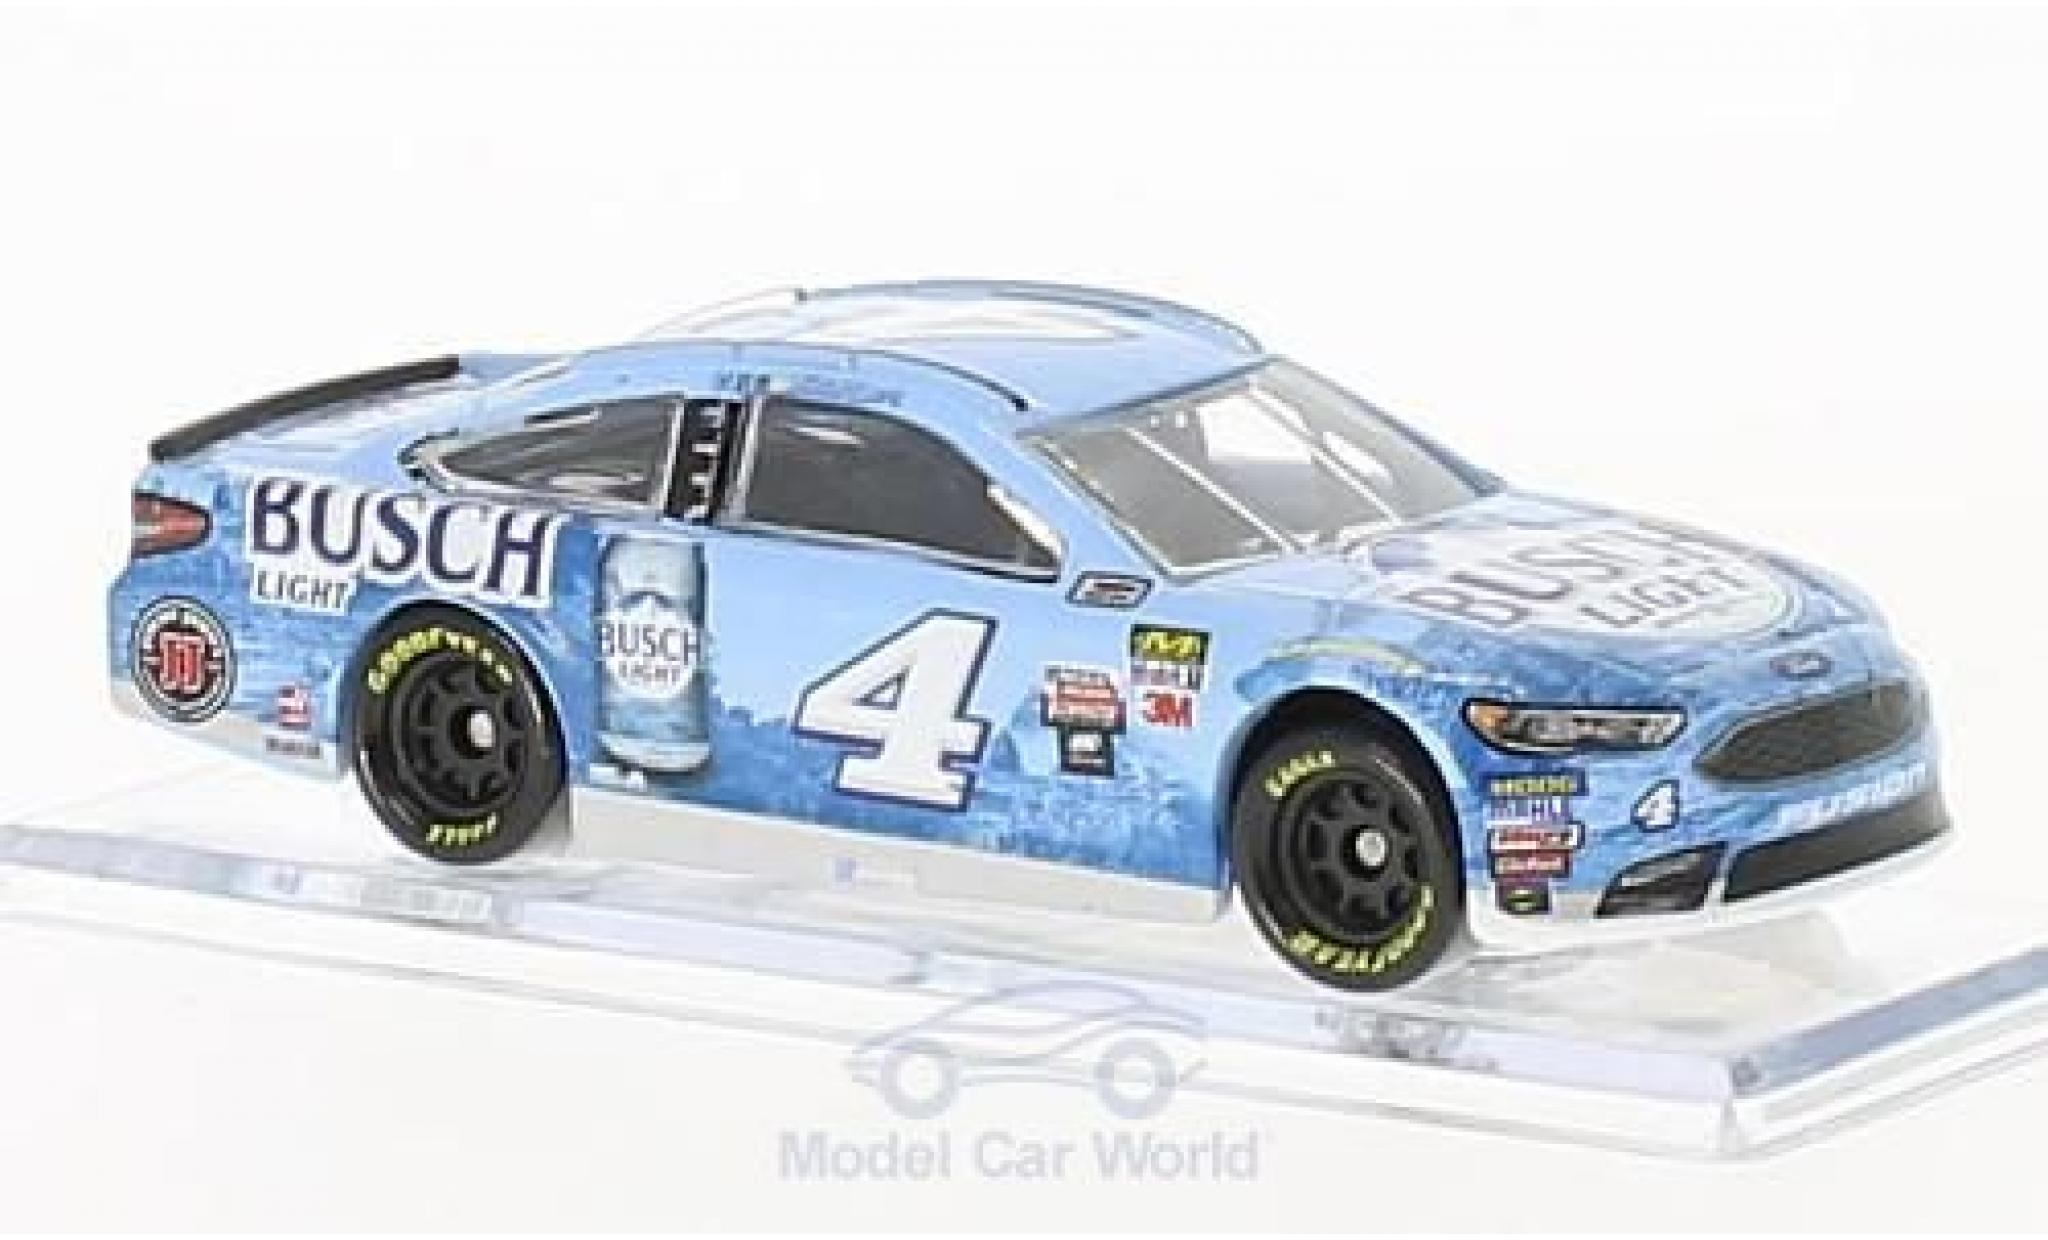 Ford Fusion 1/64 Lionel Racing No.4 Stewart-Haas Racing Busch Light Nascar 2017 K.Harvick